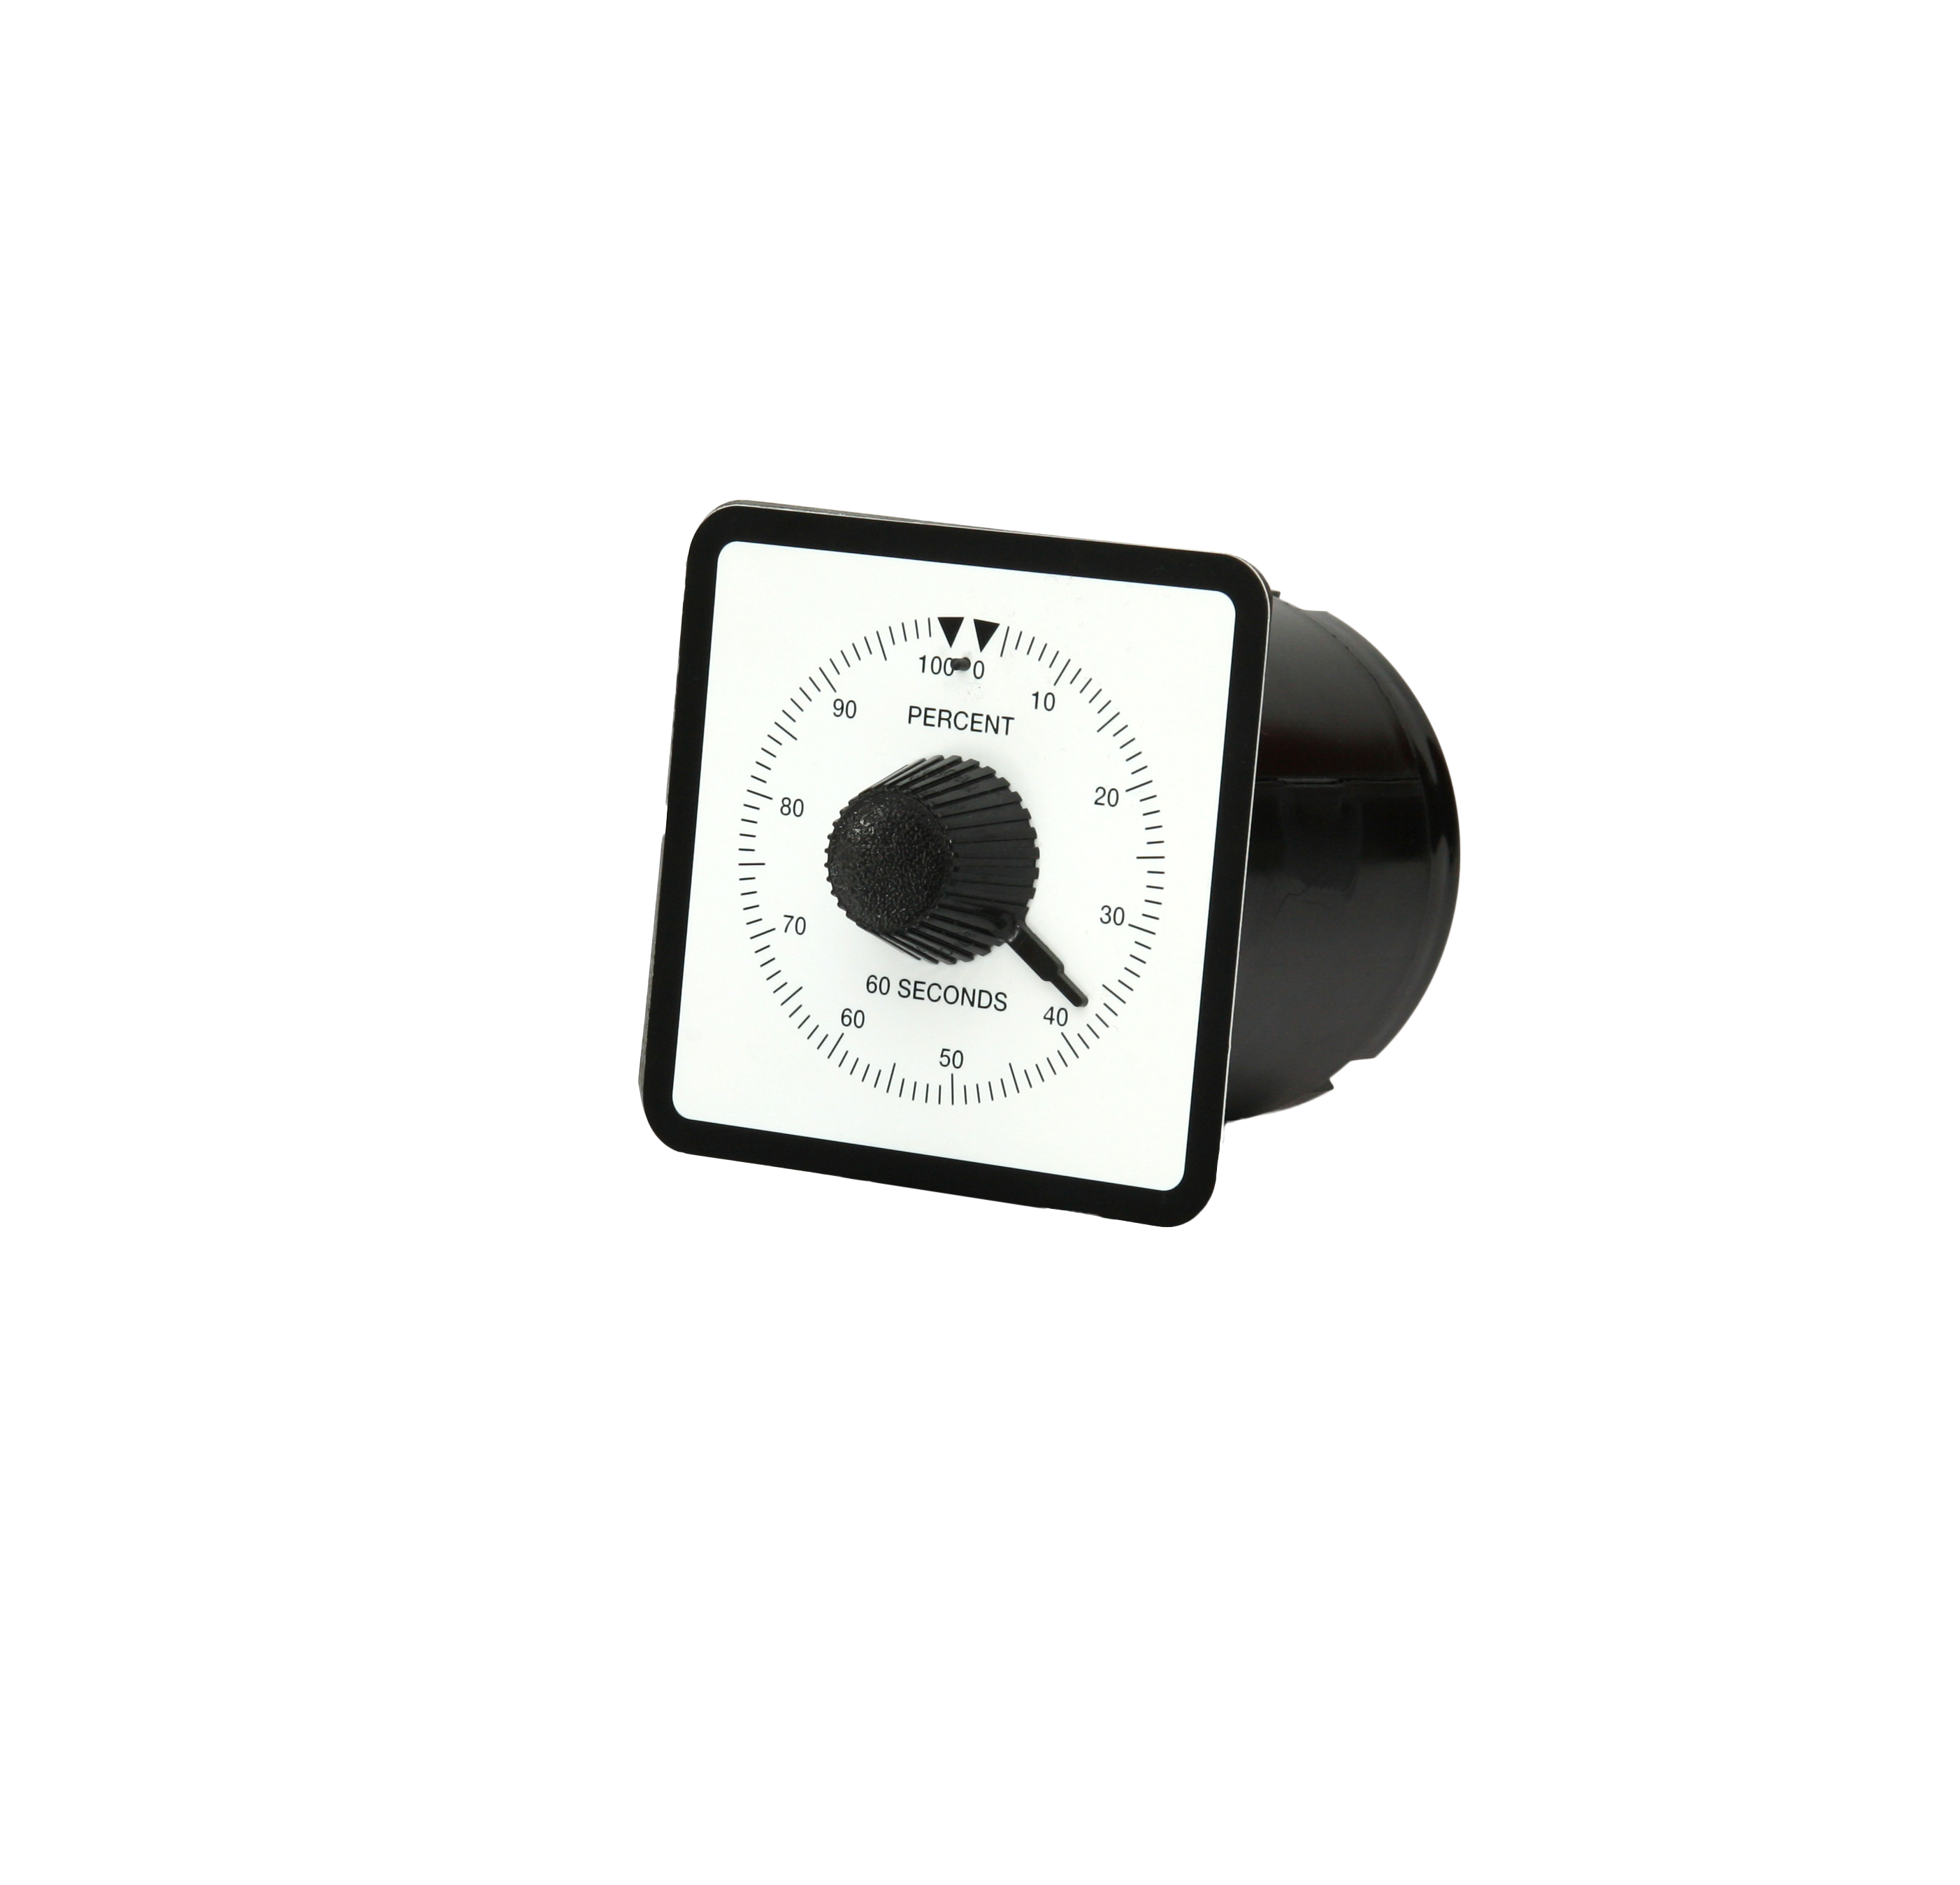 Transparent timer 60 seconds. Eagle signal electro mechanical